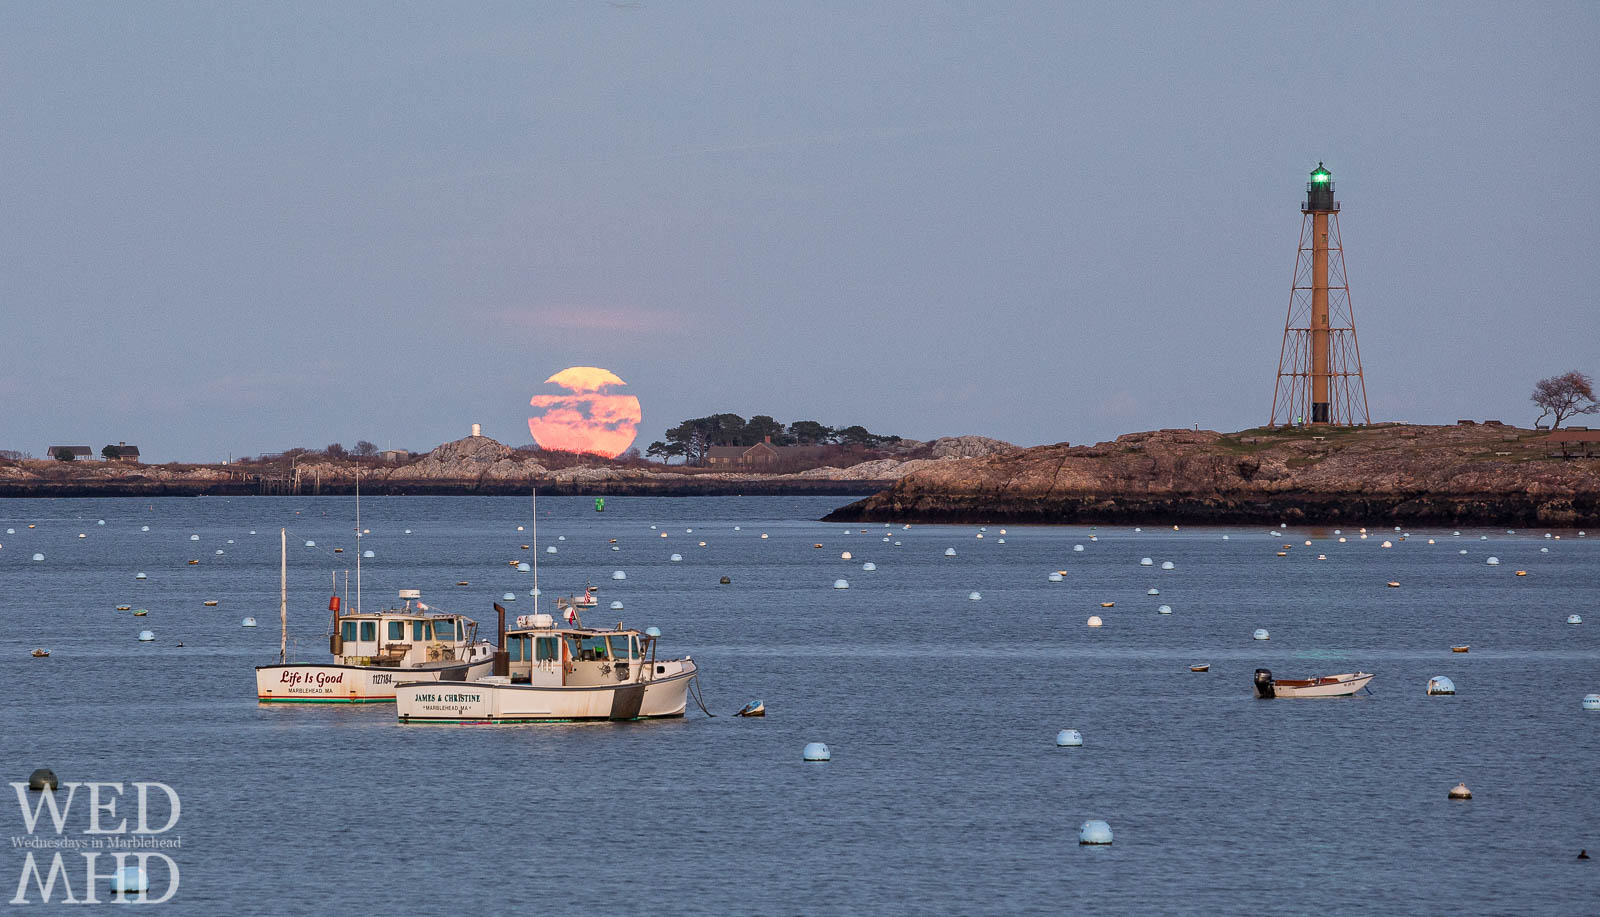 The Beaver moon is captured over Childrens Island with two working boats in Marblehead harbor on a perfect night for a moonrise